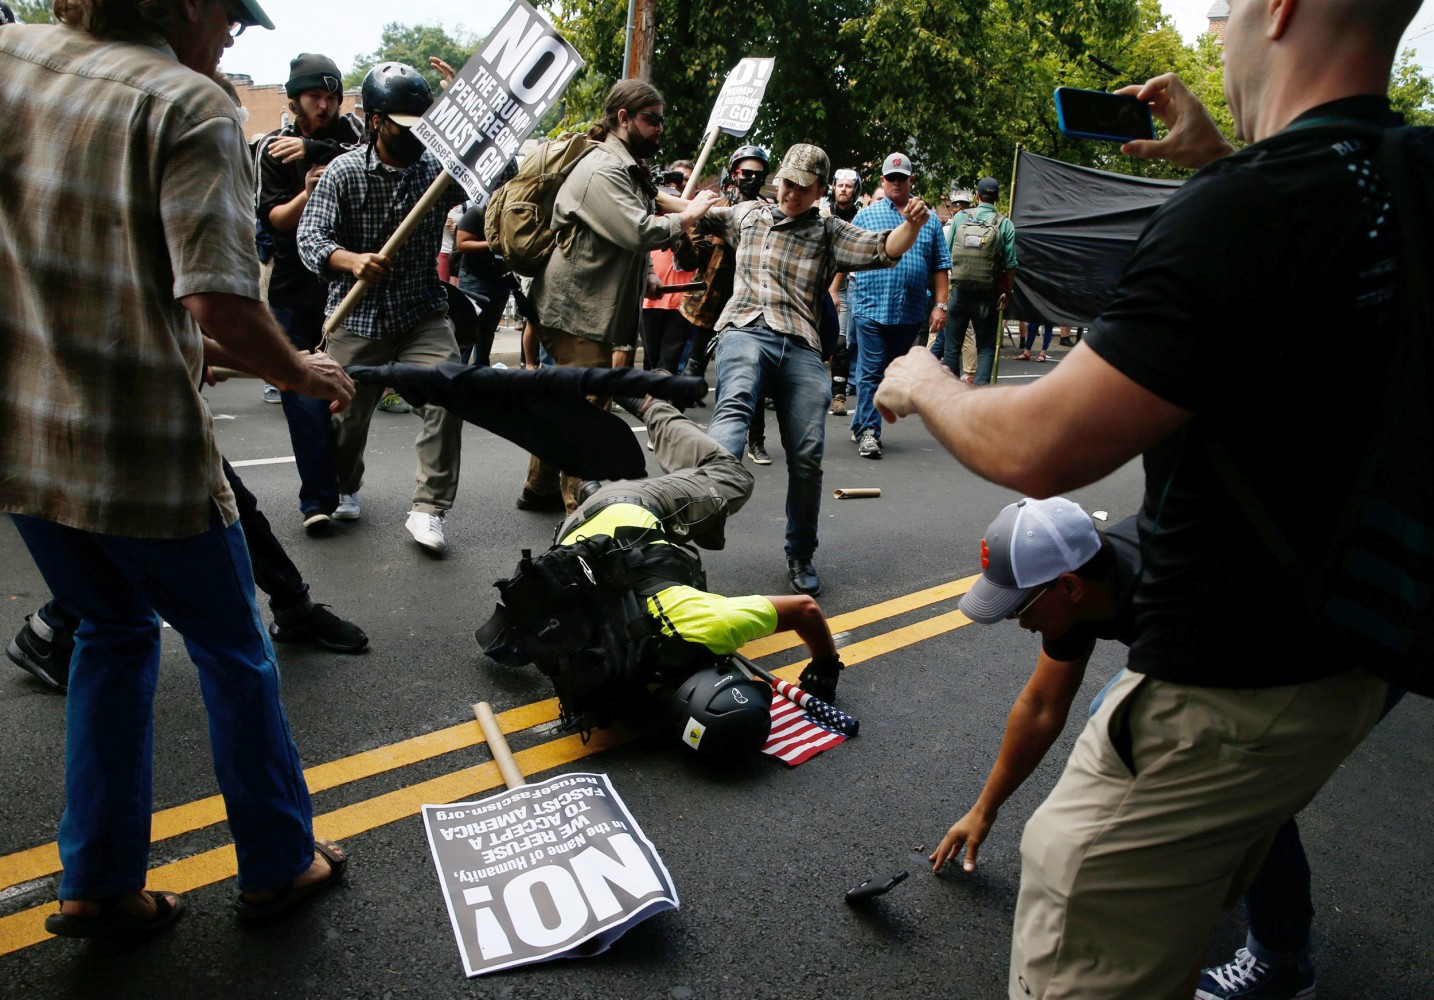 Kentucky to relocate-not to remove-Confederate statues after Charlottesville tragedy